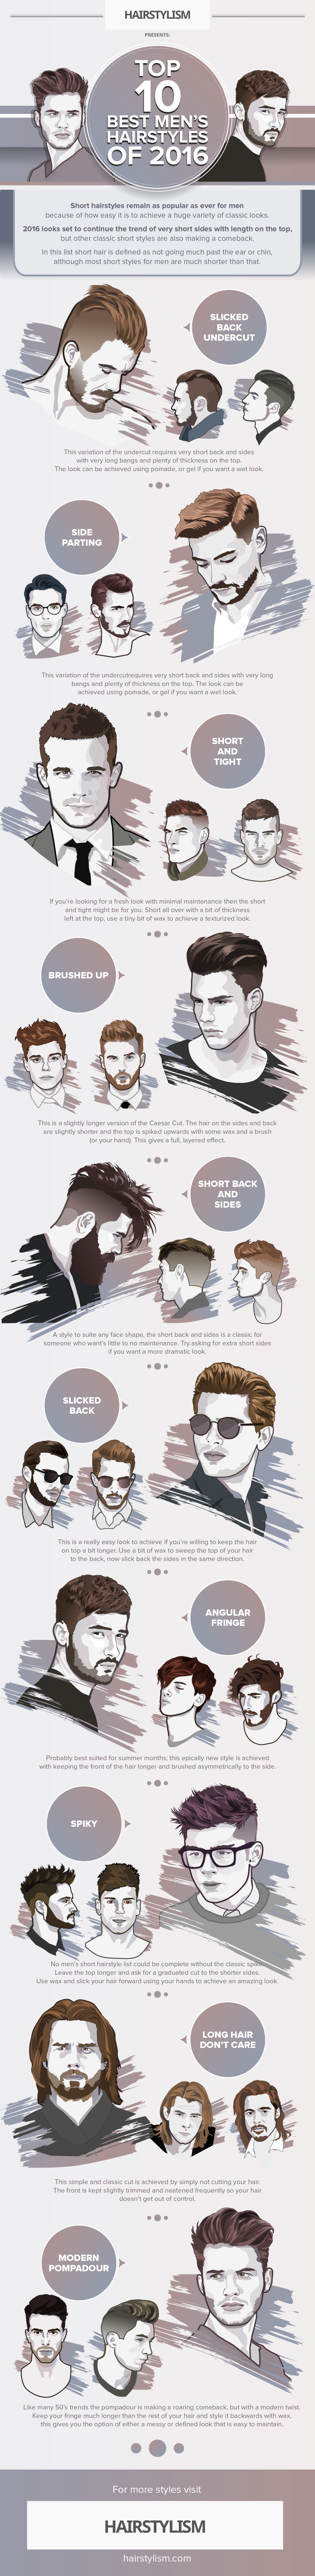 hairstylism-infographic